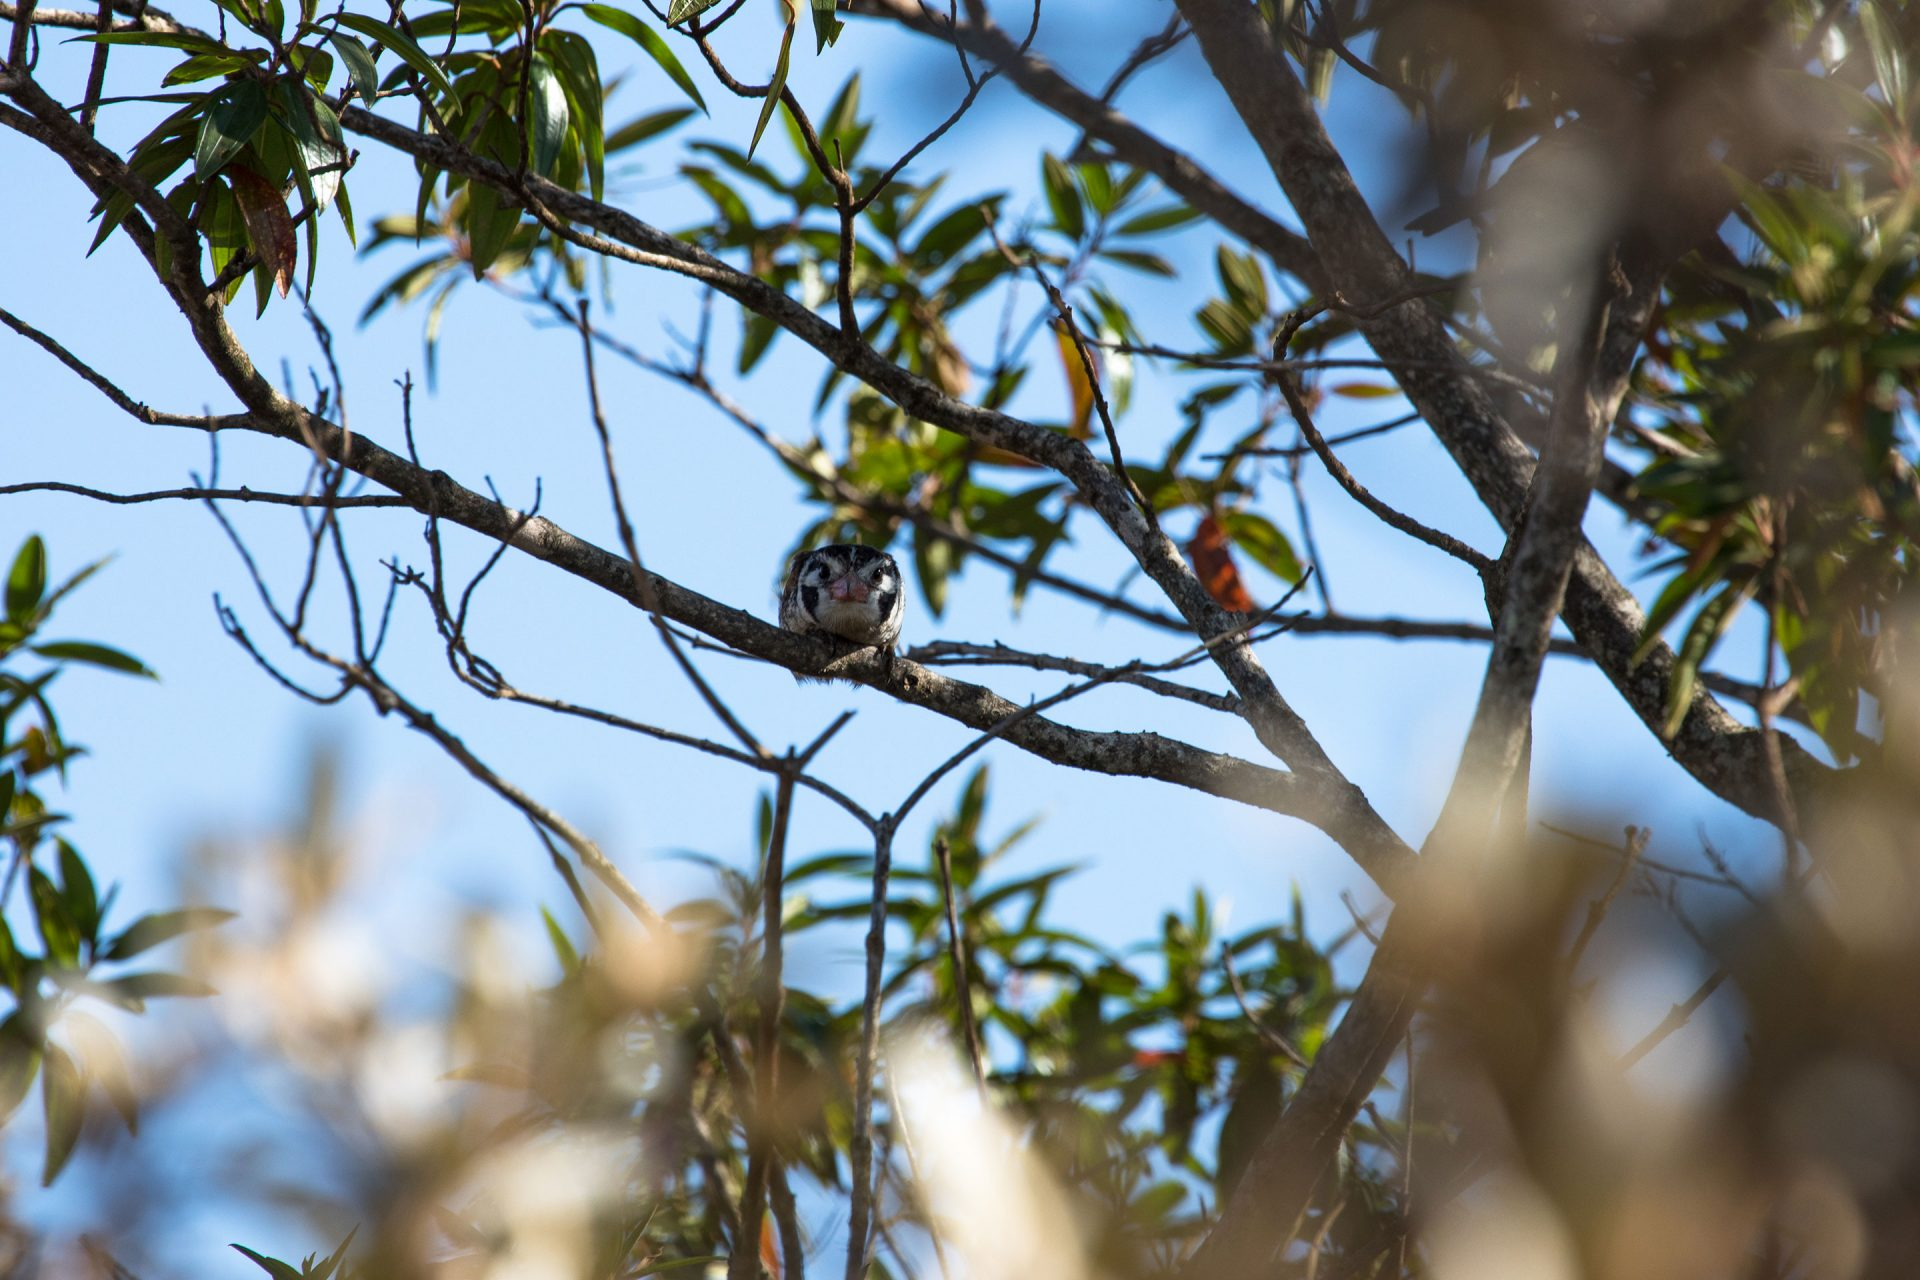 White-eared Puffbird was uncommon during our visit.